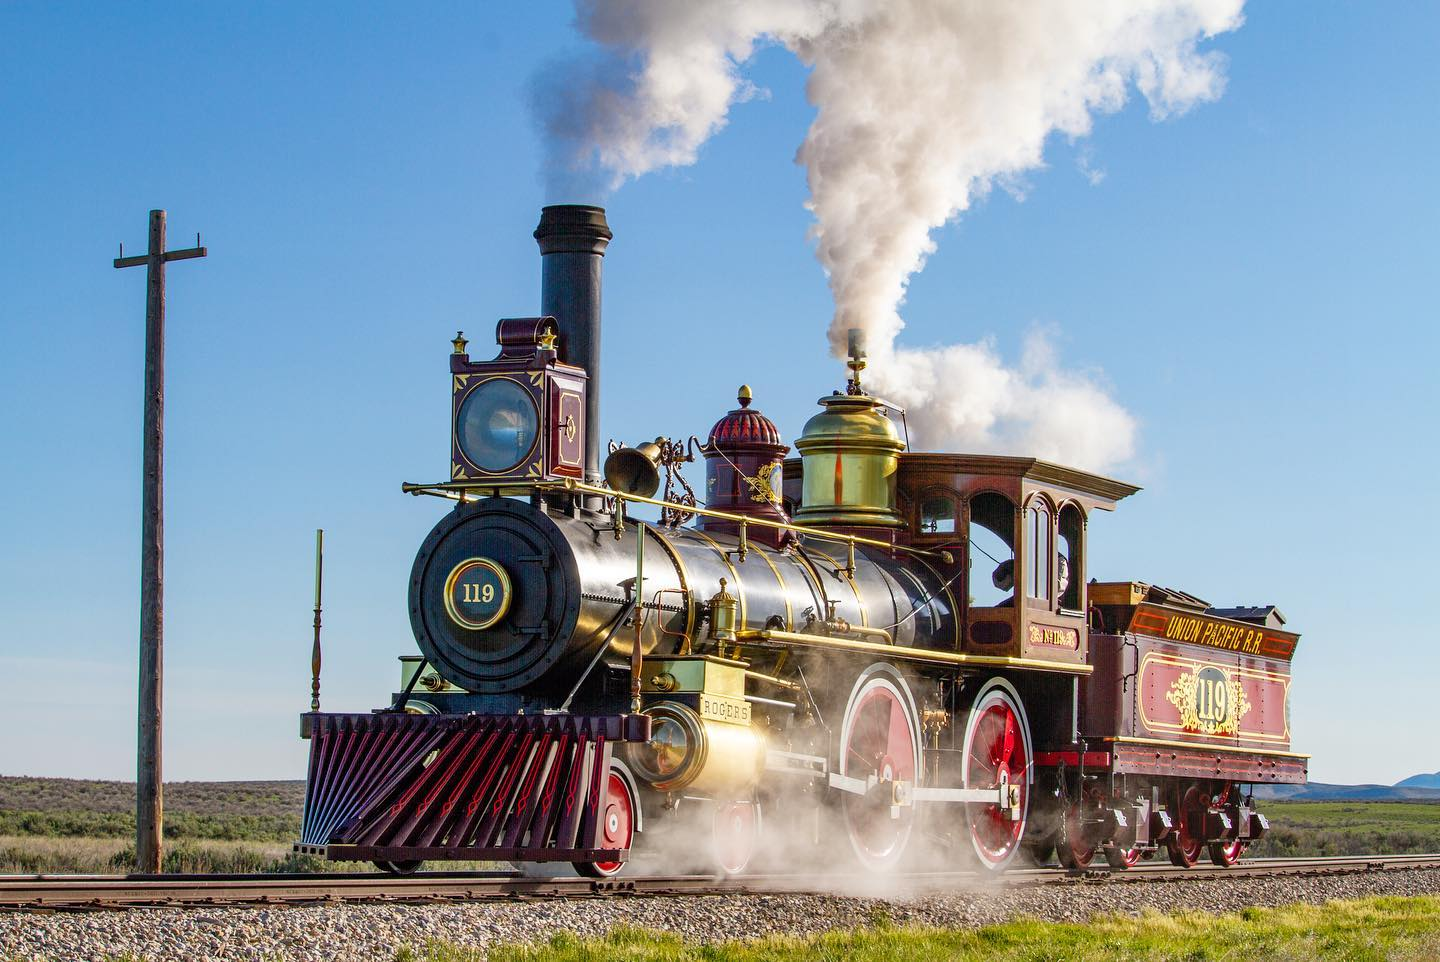 Union Pacific No. 119, a replica of one of the original locomotives on-site in 1869. Maxwell Hamberger photo.